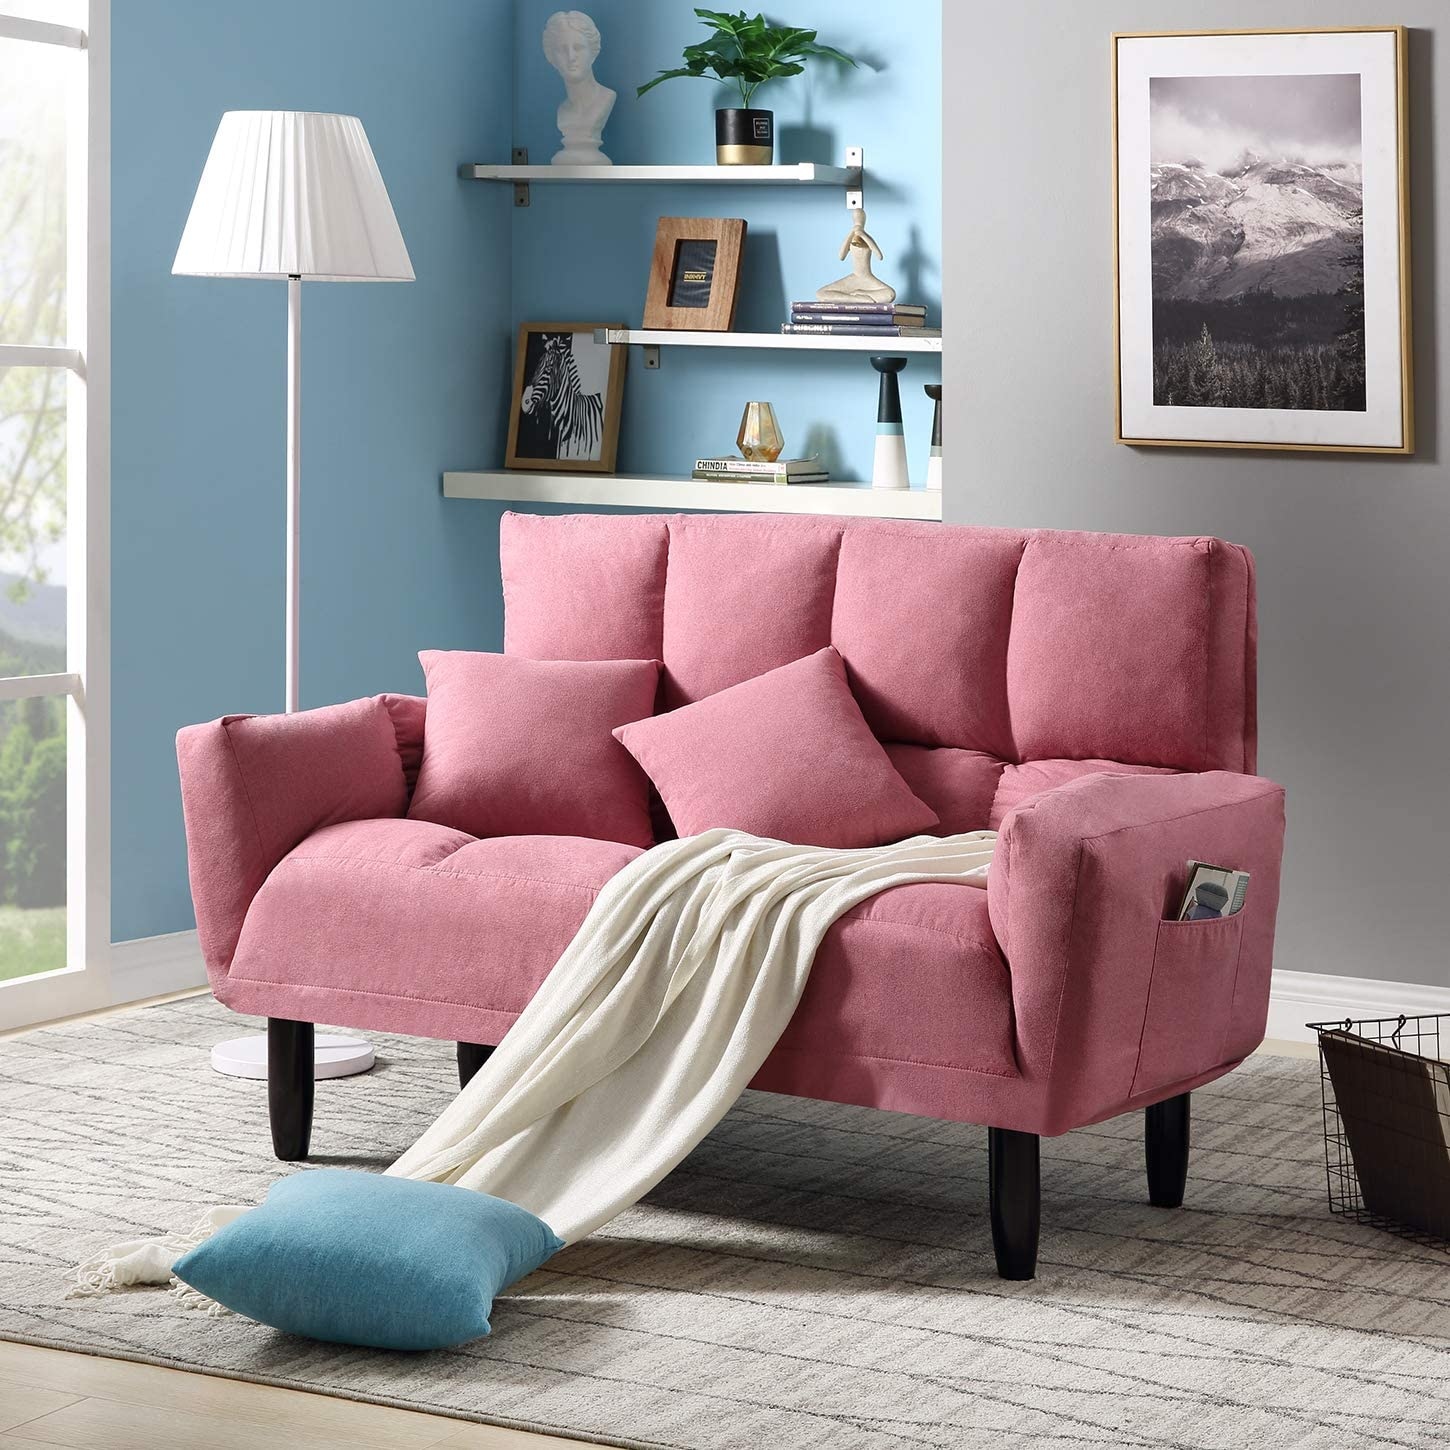 Contemporary Loveseat Adjustable Upholstered Foldable Sofa Couch Sleeper Sofa